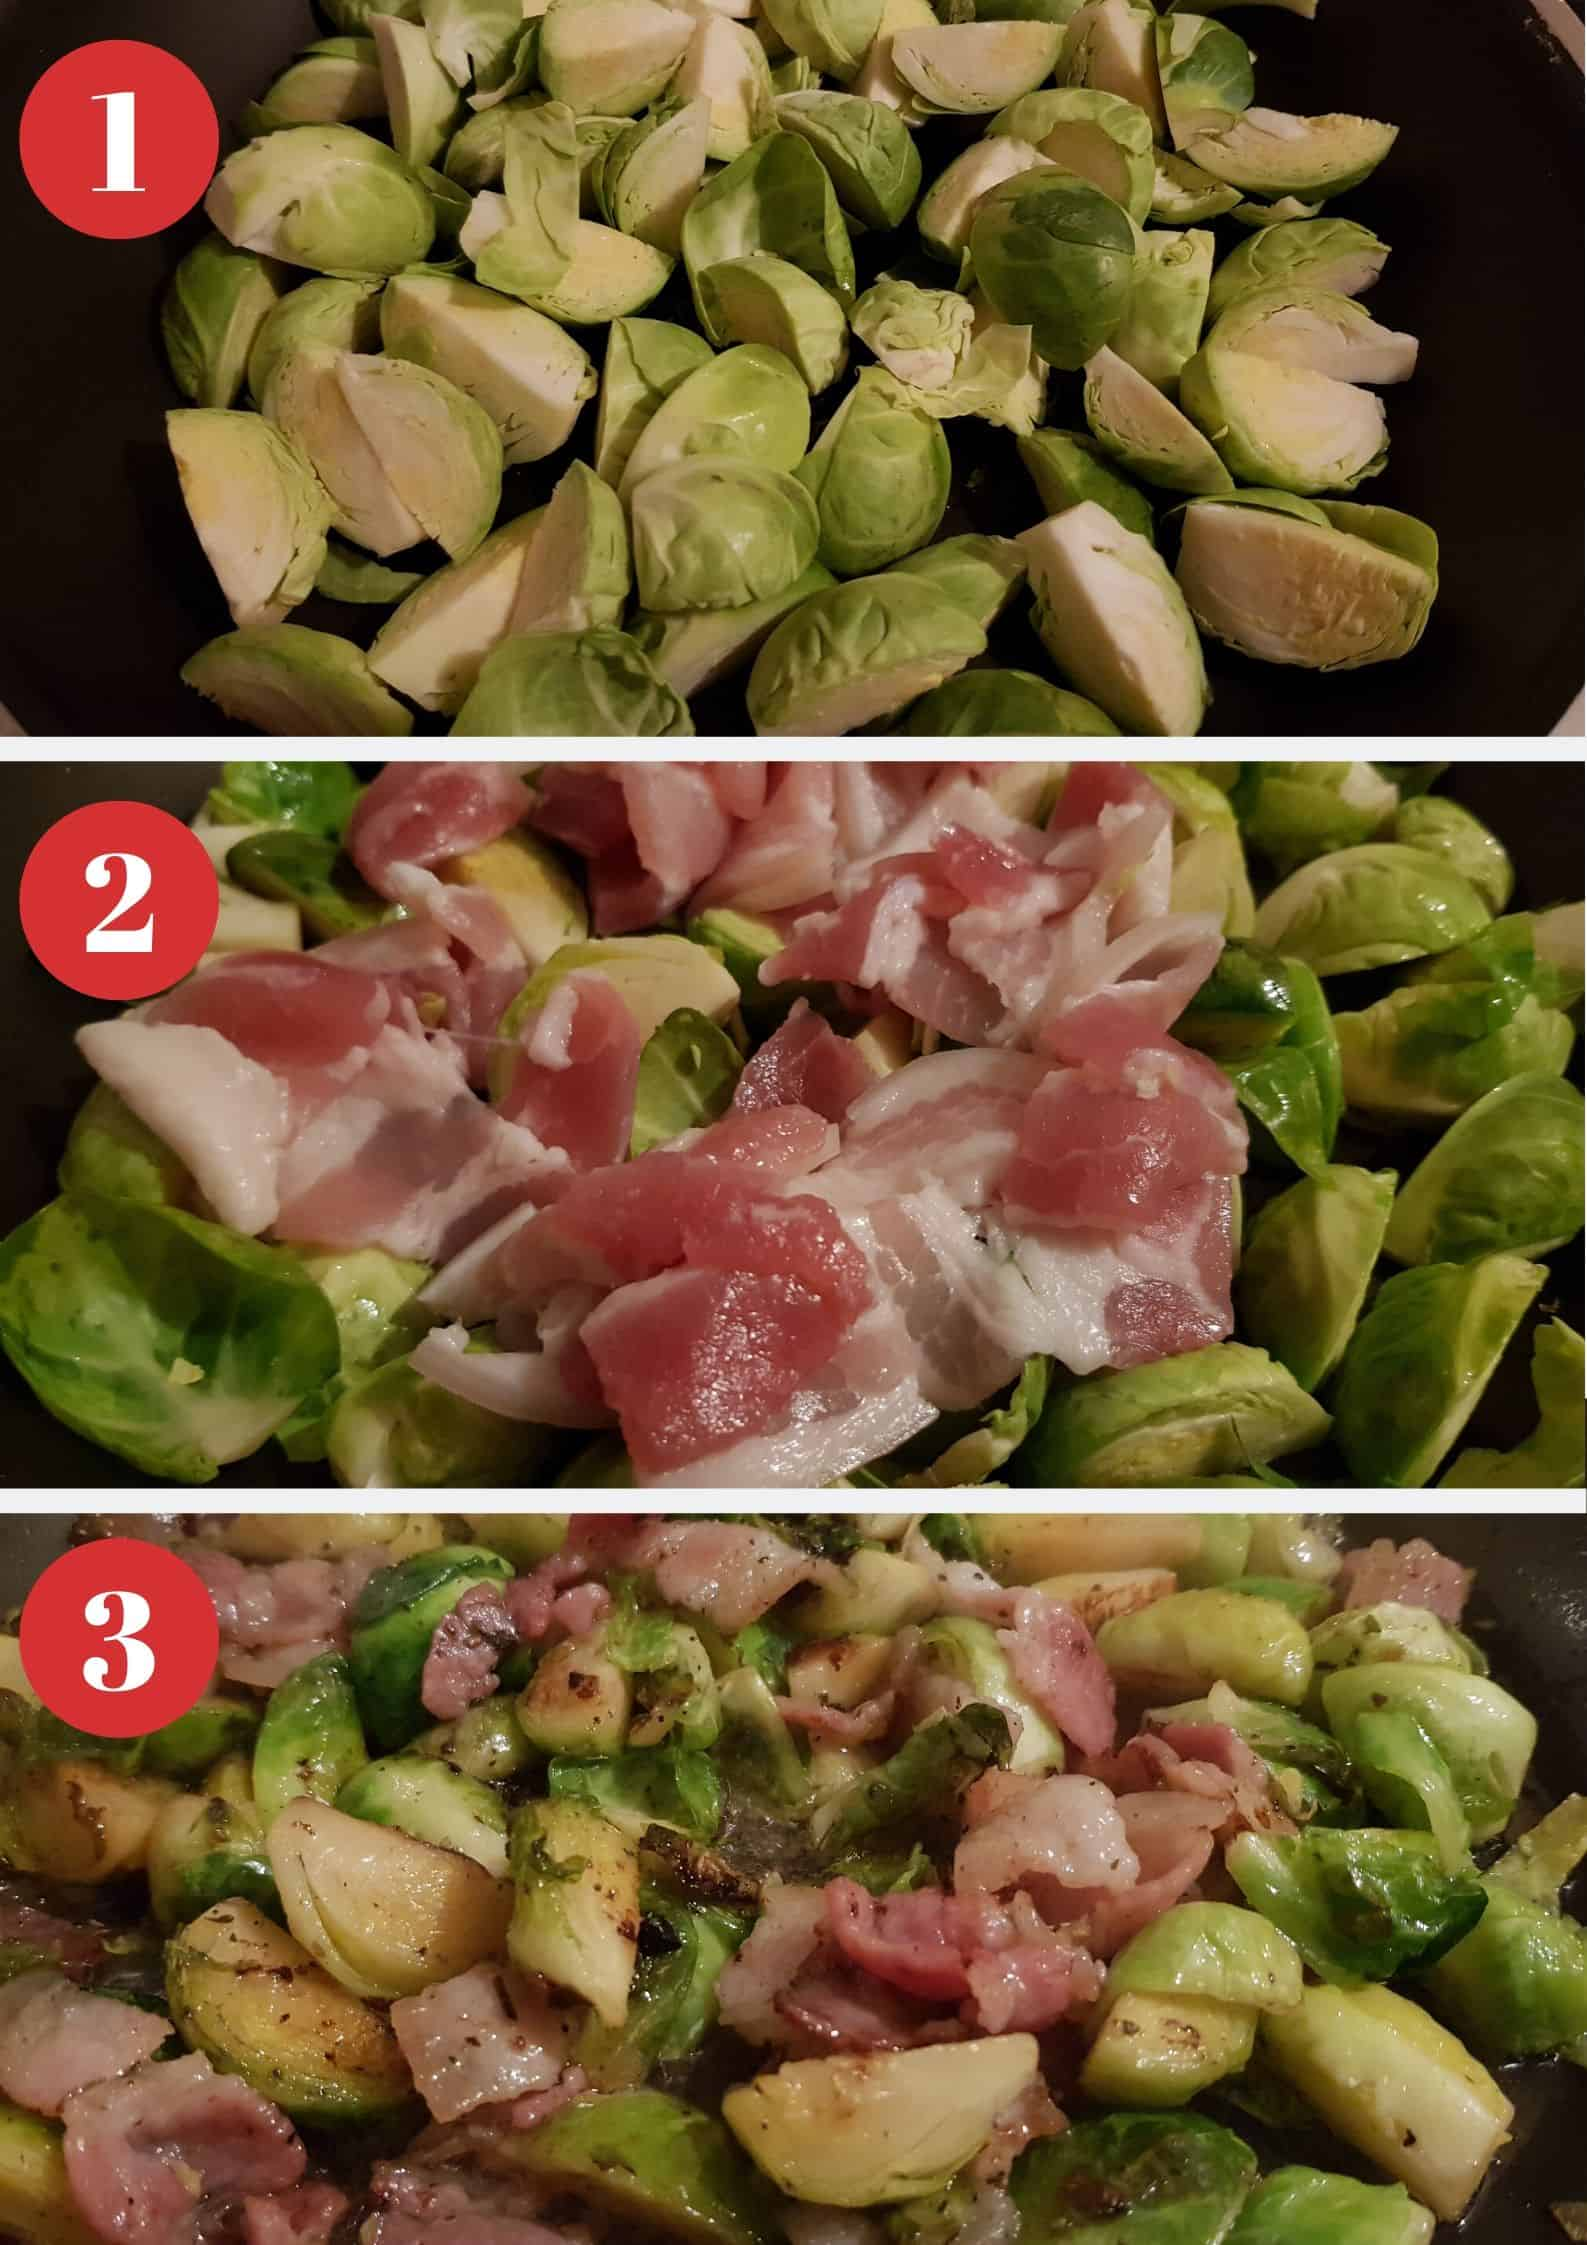 Infographic showing how to make brussels sprouts with bacon